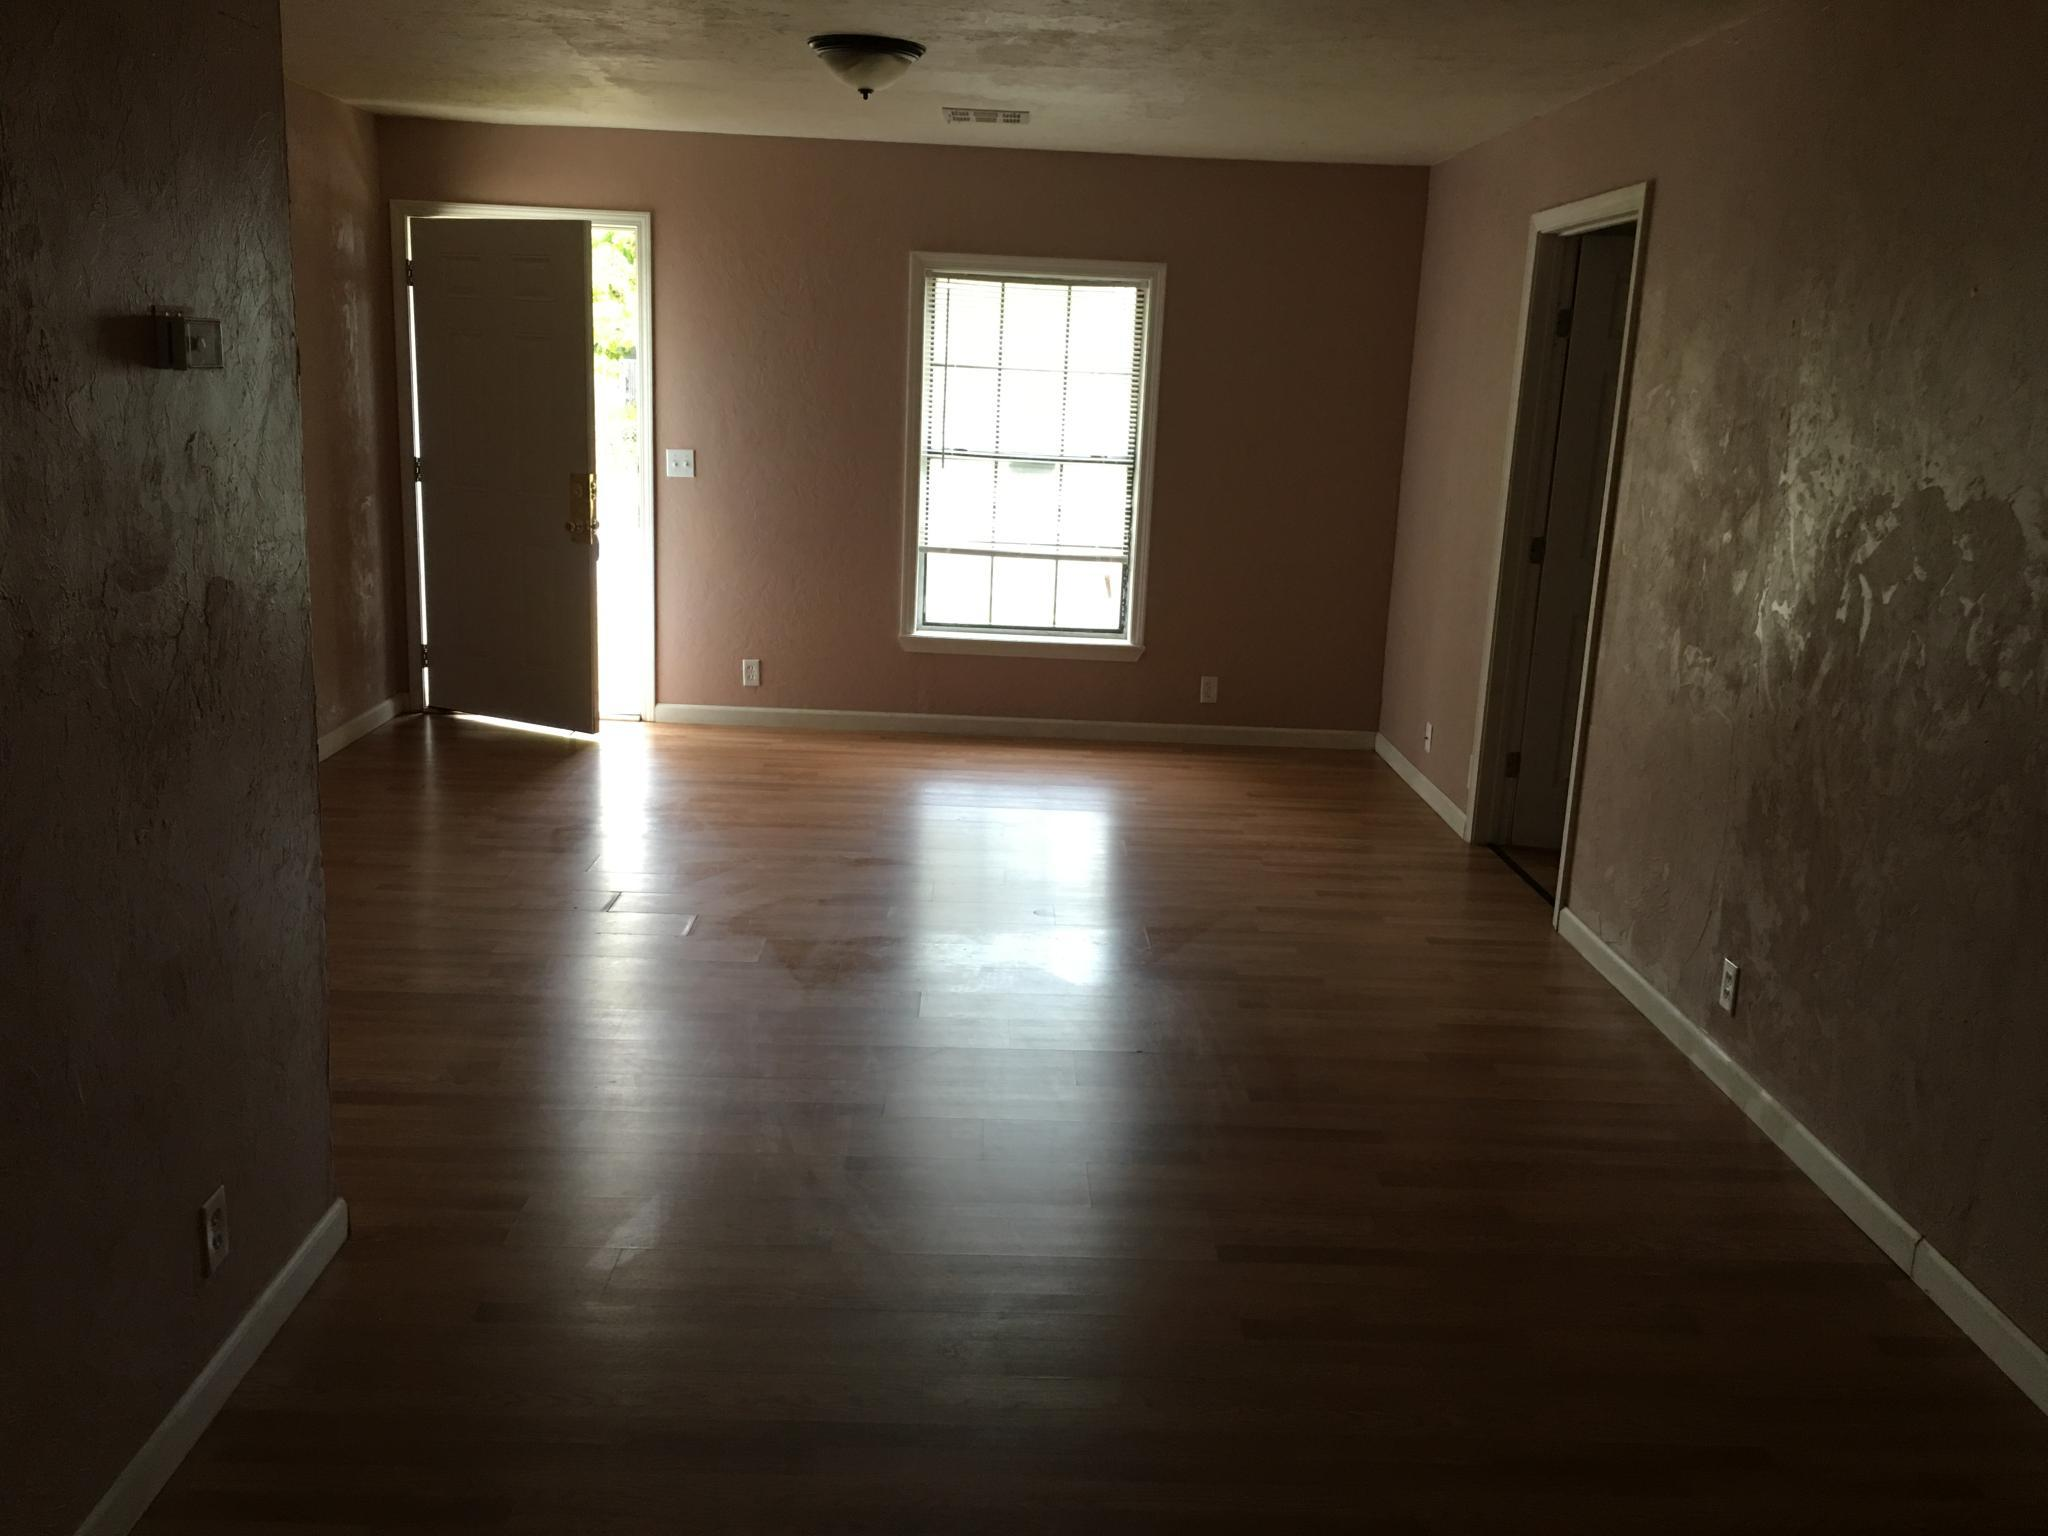 5000 N Asbury Ave For Rent - Bethany, OK   Trulia